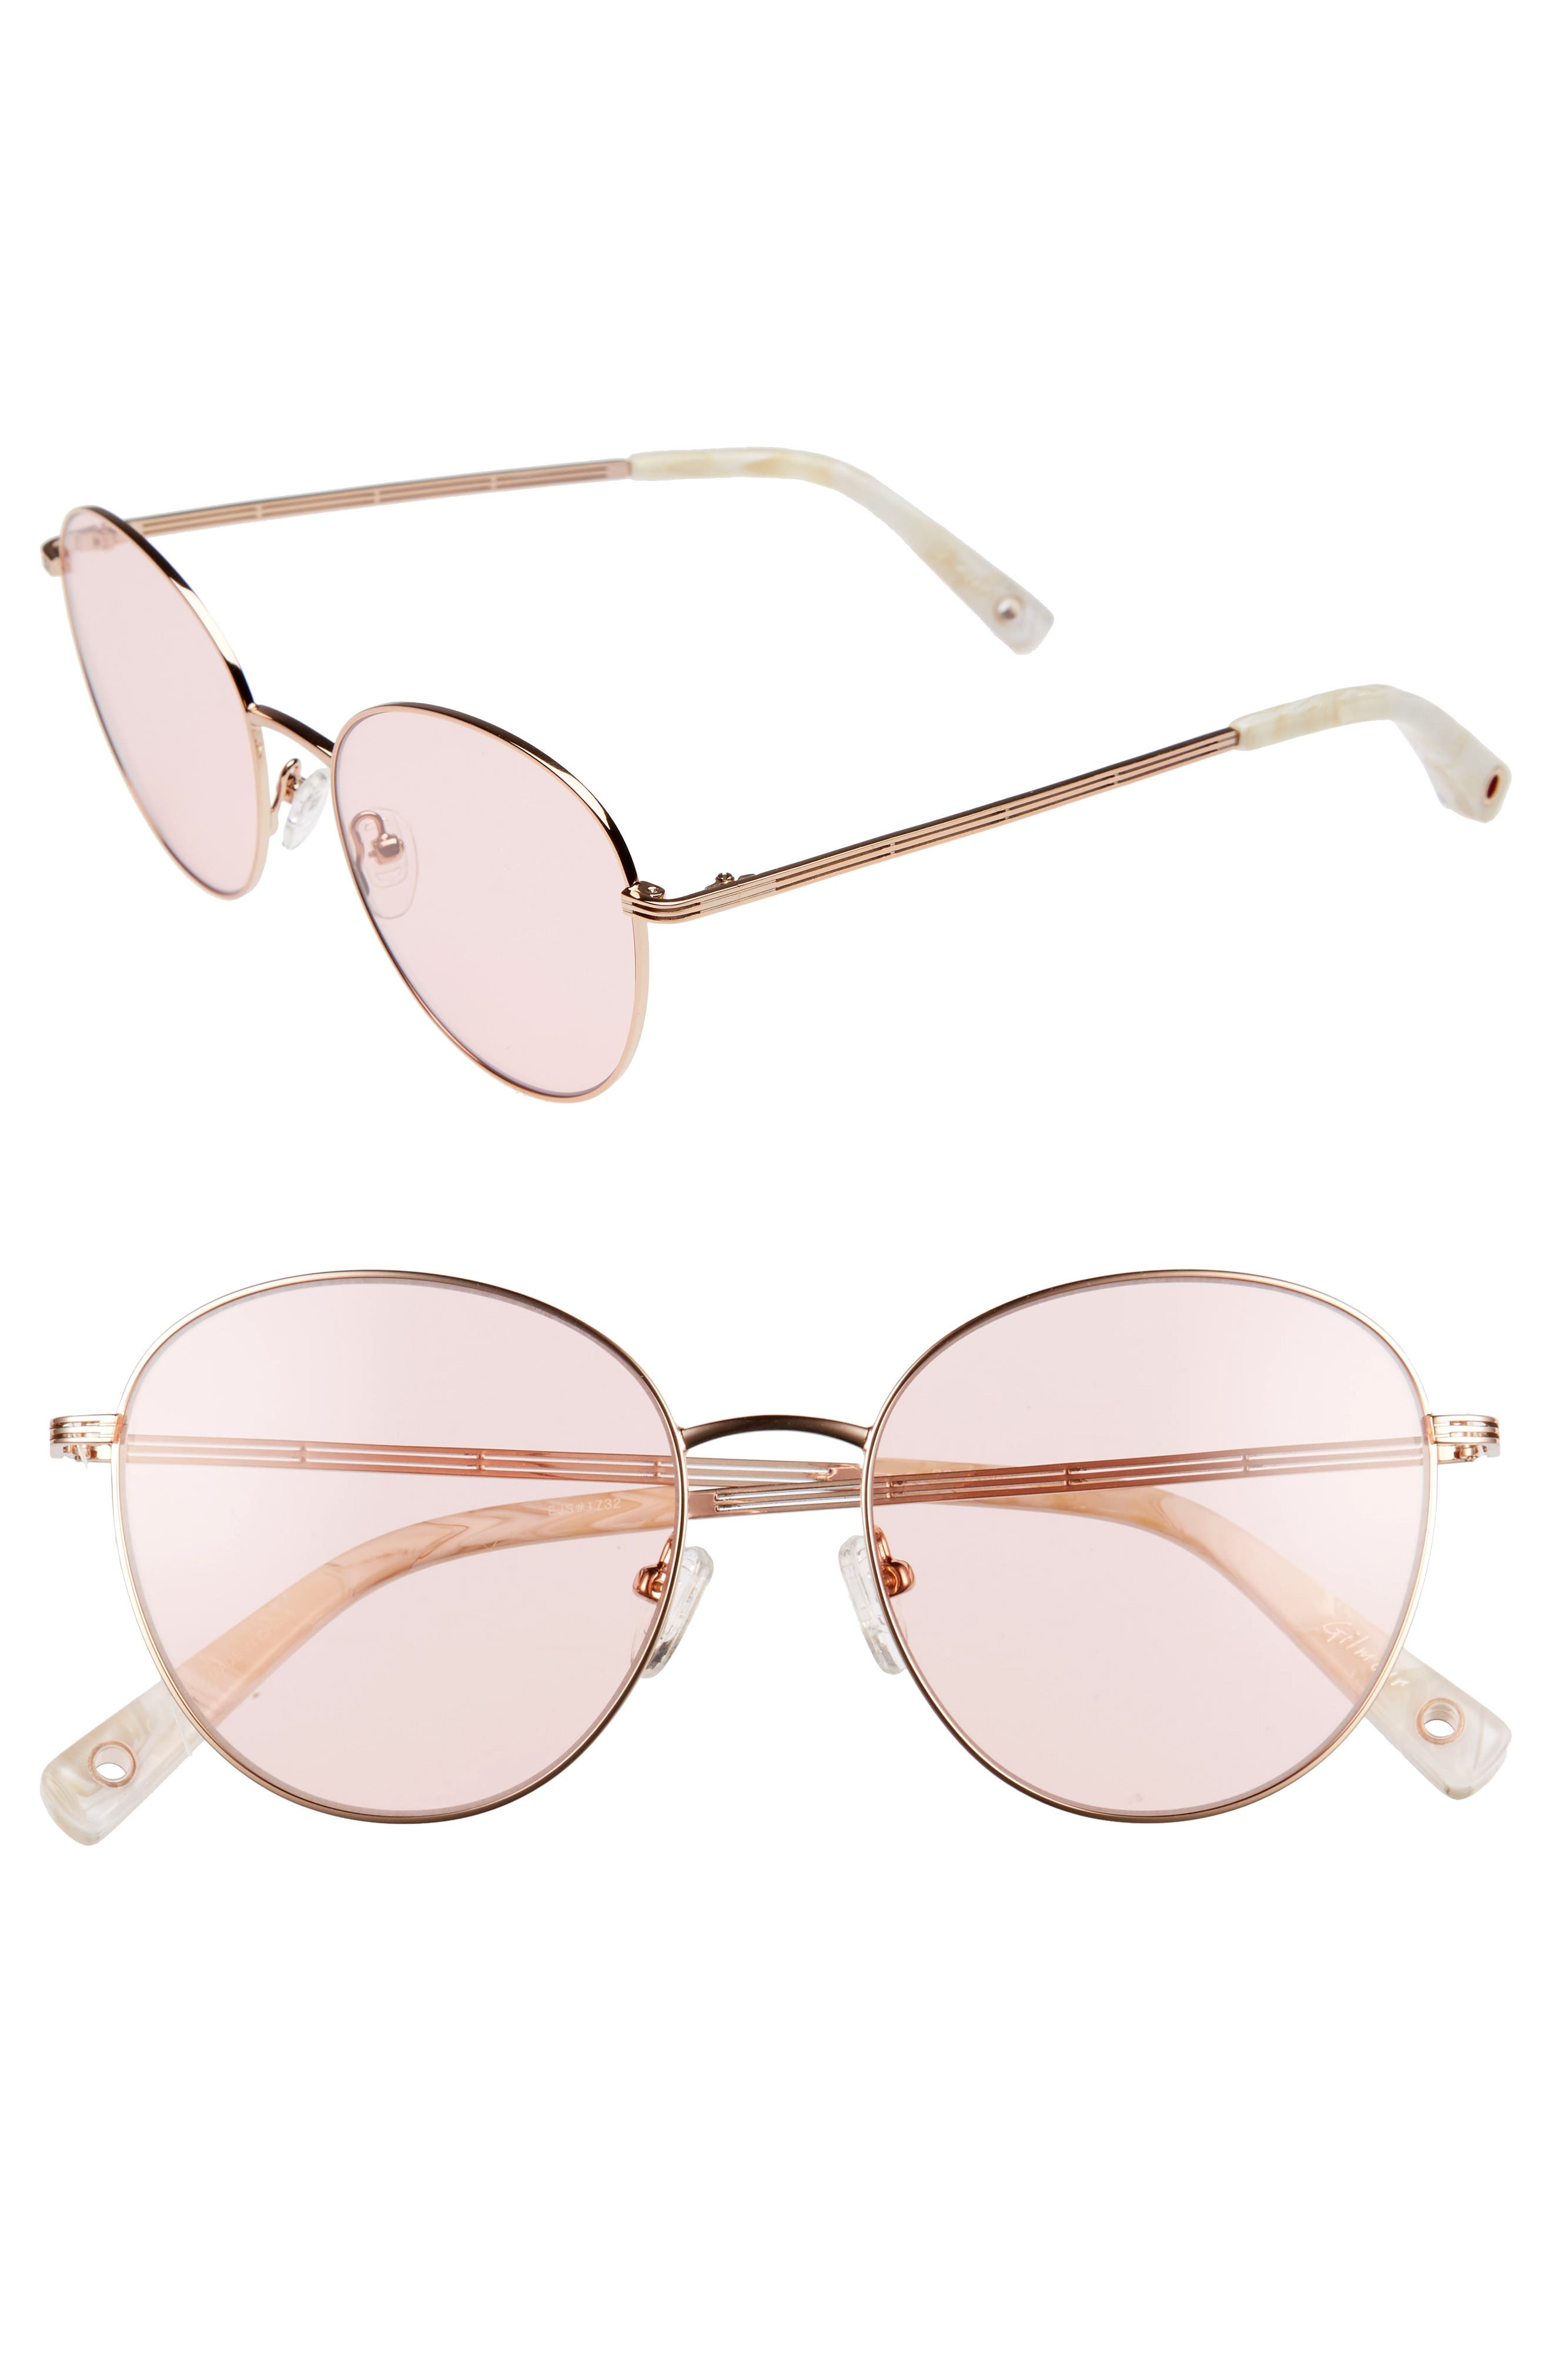 Gilmour 53mm Round Sunglasses & Beaded Chain,                             Main thumbnail 3, color,